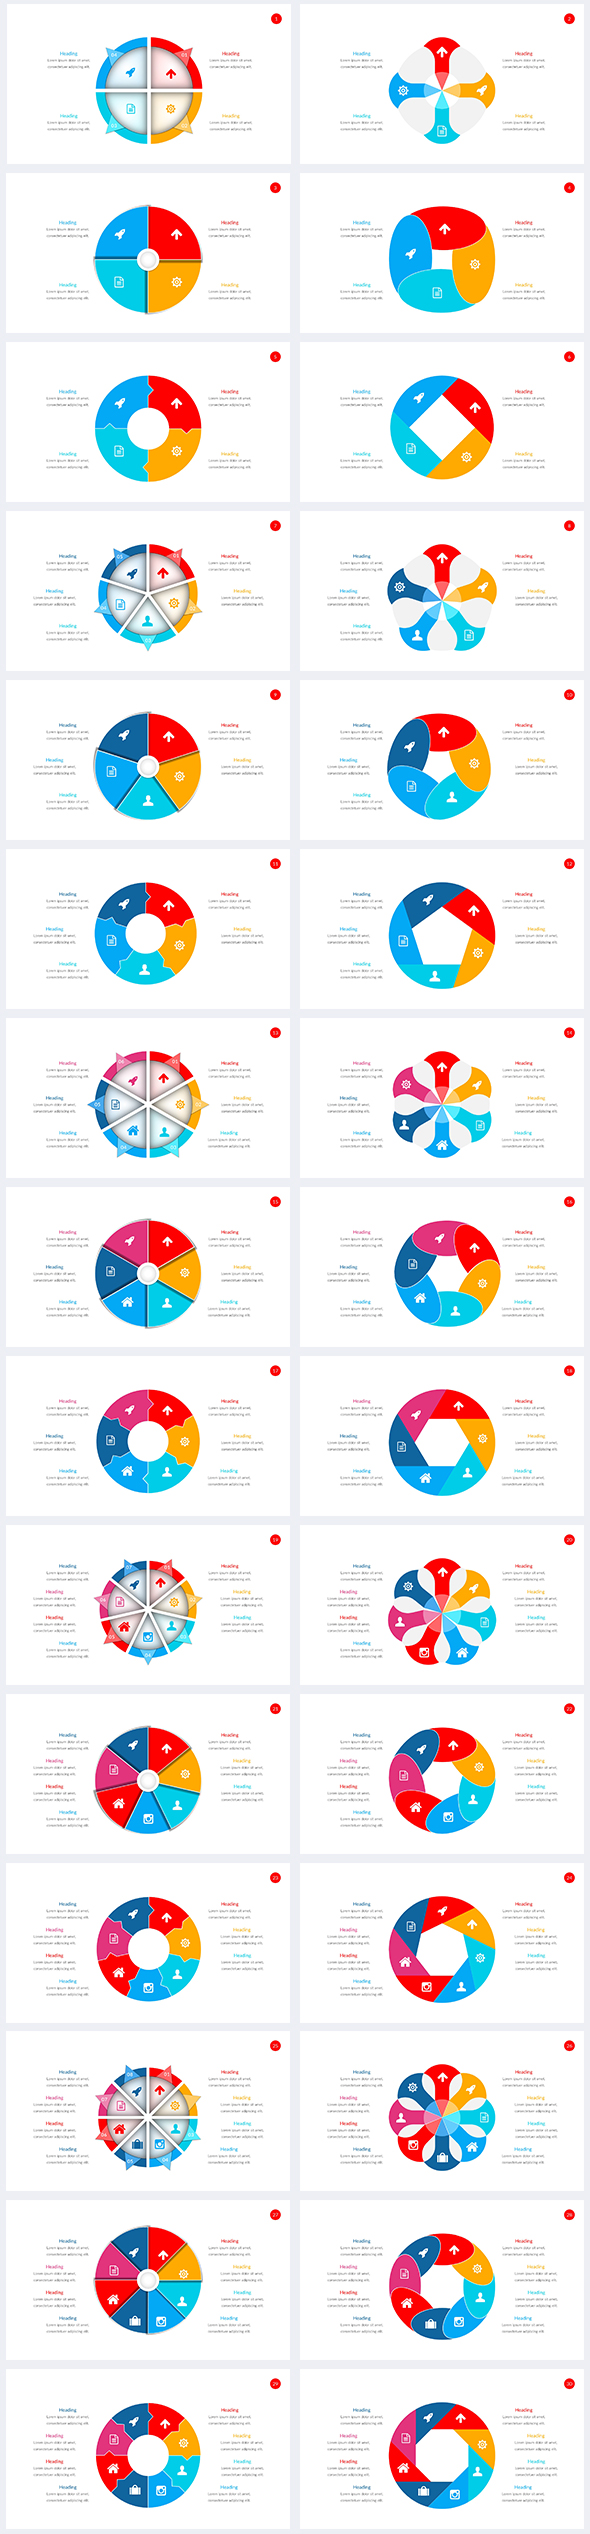 cycle-Infographic-powerpoint-template